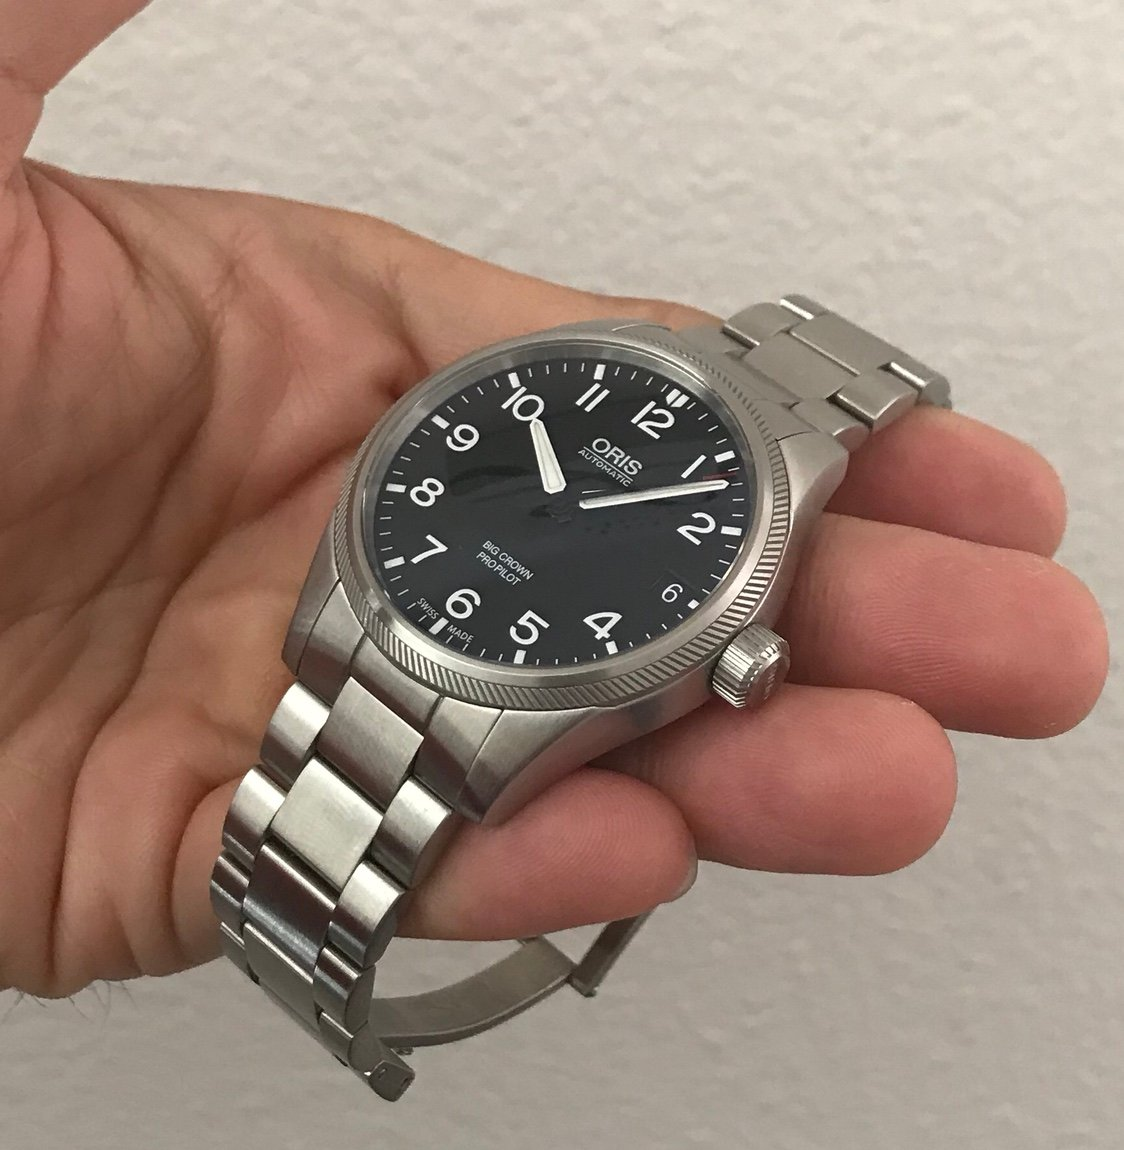 Functions Date Hour Minute Second Casual Watch Style Oris Crown Propilot Automatic Black Dial Stainless Steel 751 7697 4164mb